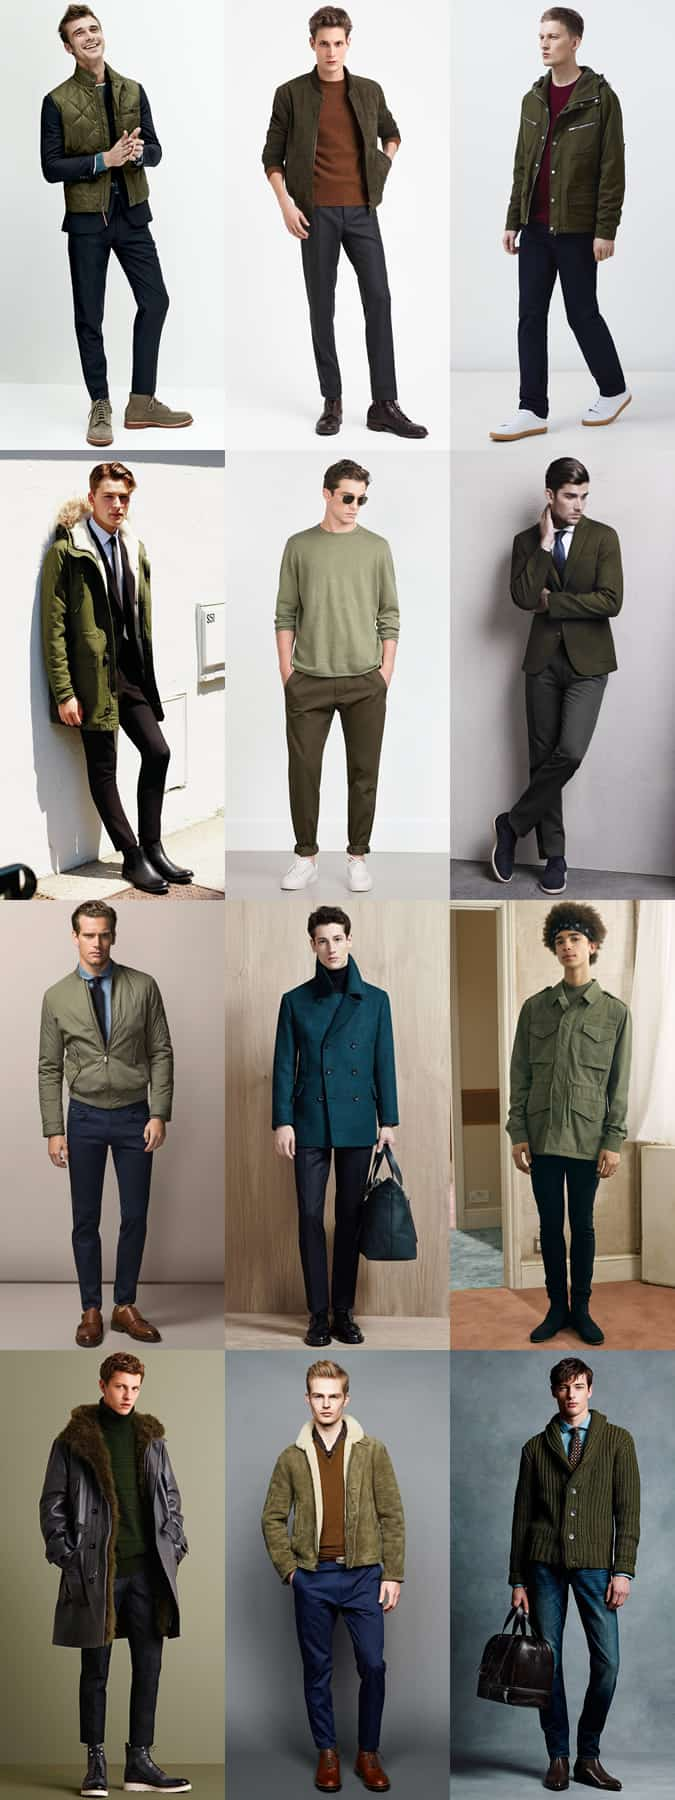 Men's Subdued/Military Green Clothing Outfit Inspiration Lookbook